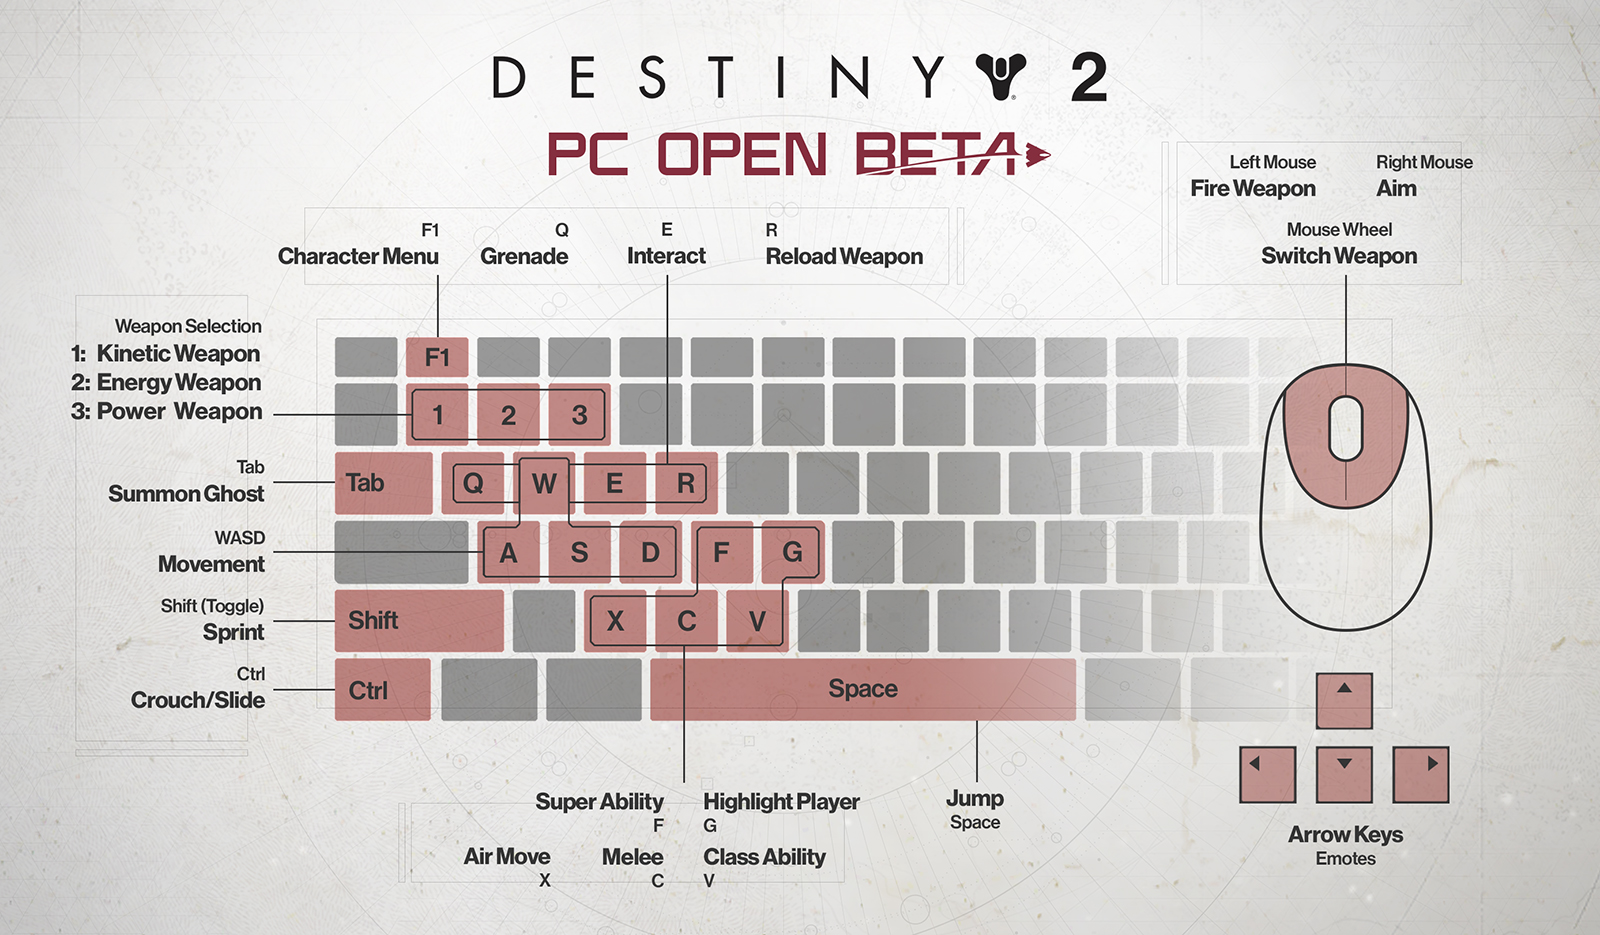 Destiny 2 key bindings and key mapping most the what yoursquod expect from the destiny 2 key bindings are in place movement is handled through wasd shift is your sprint and ctrl is your gumiabroncs Image collections